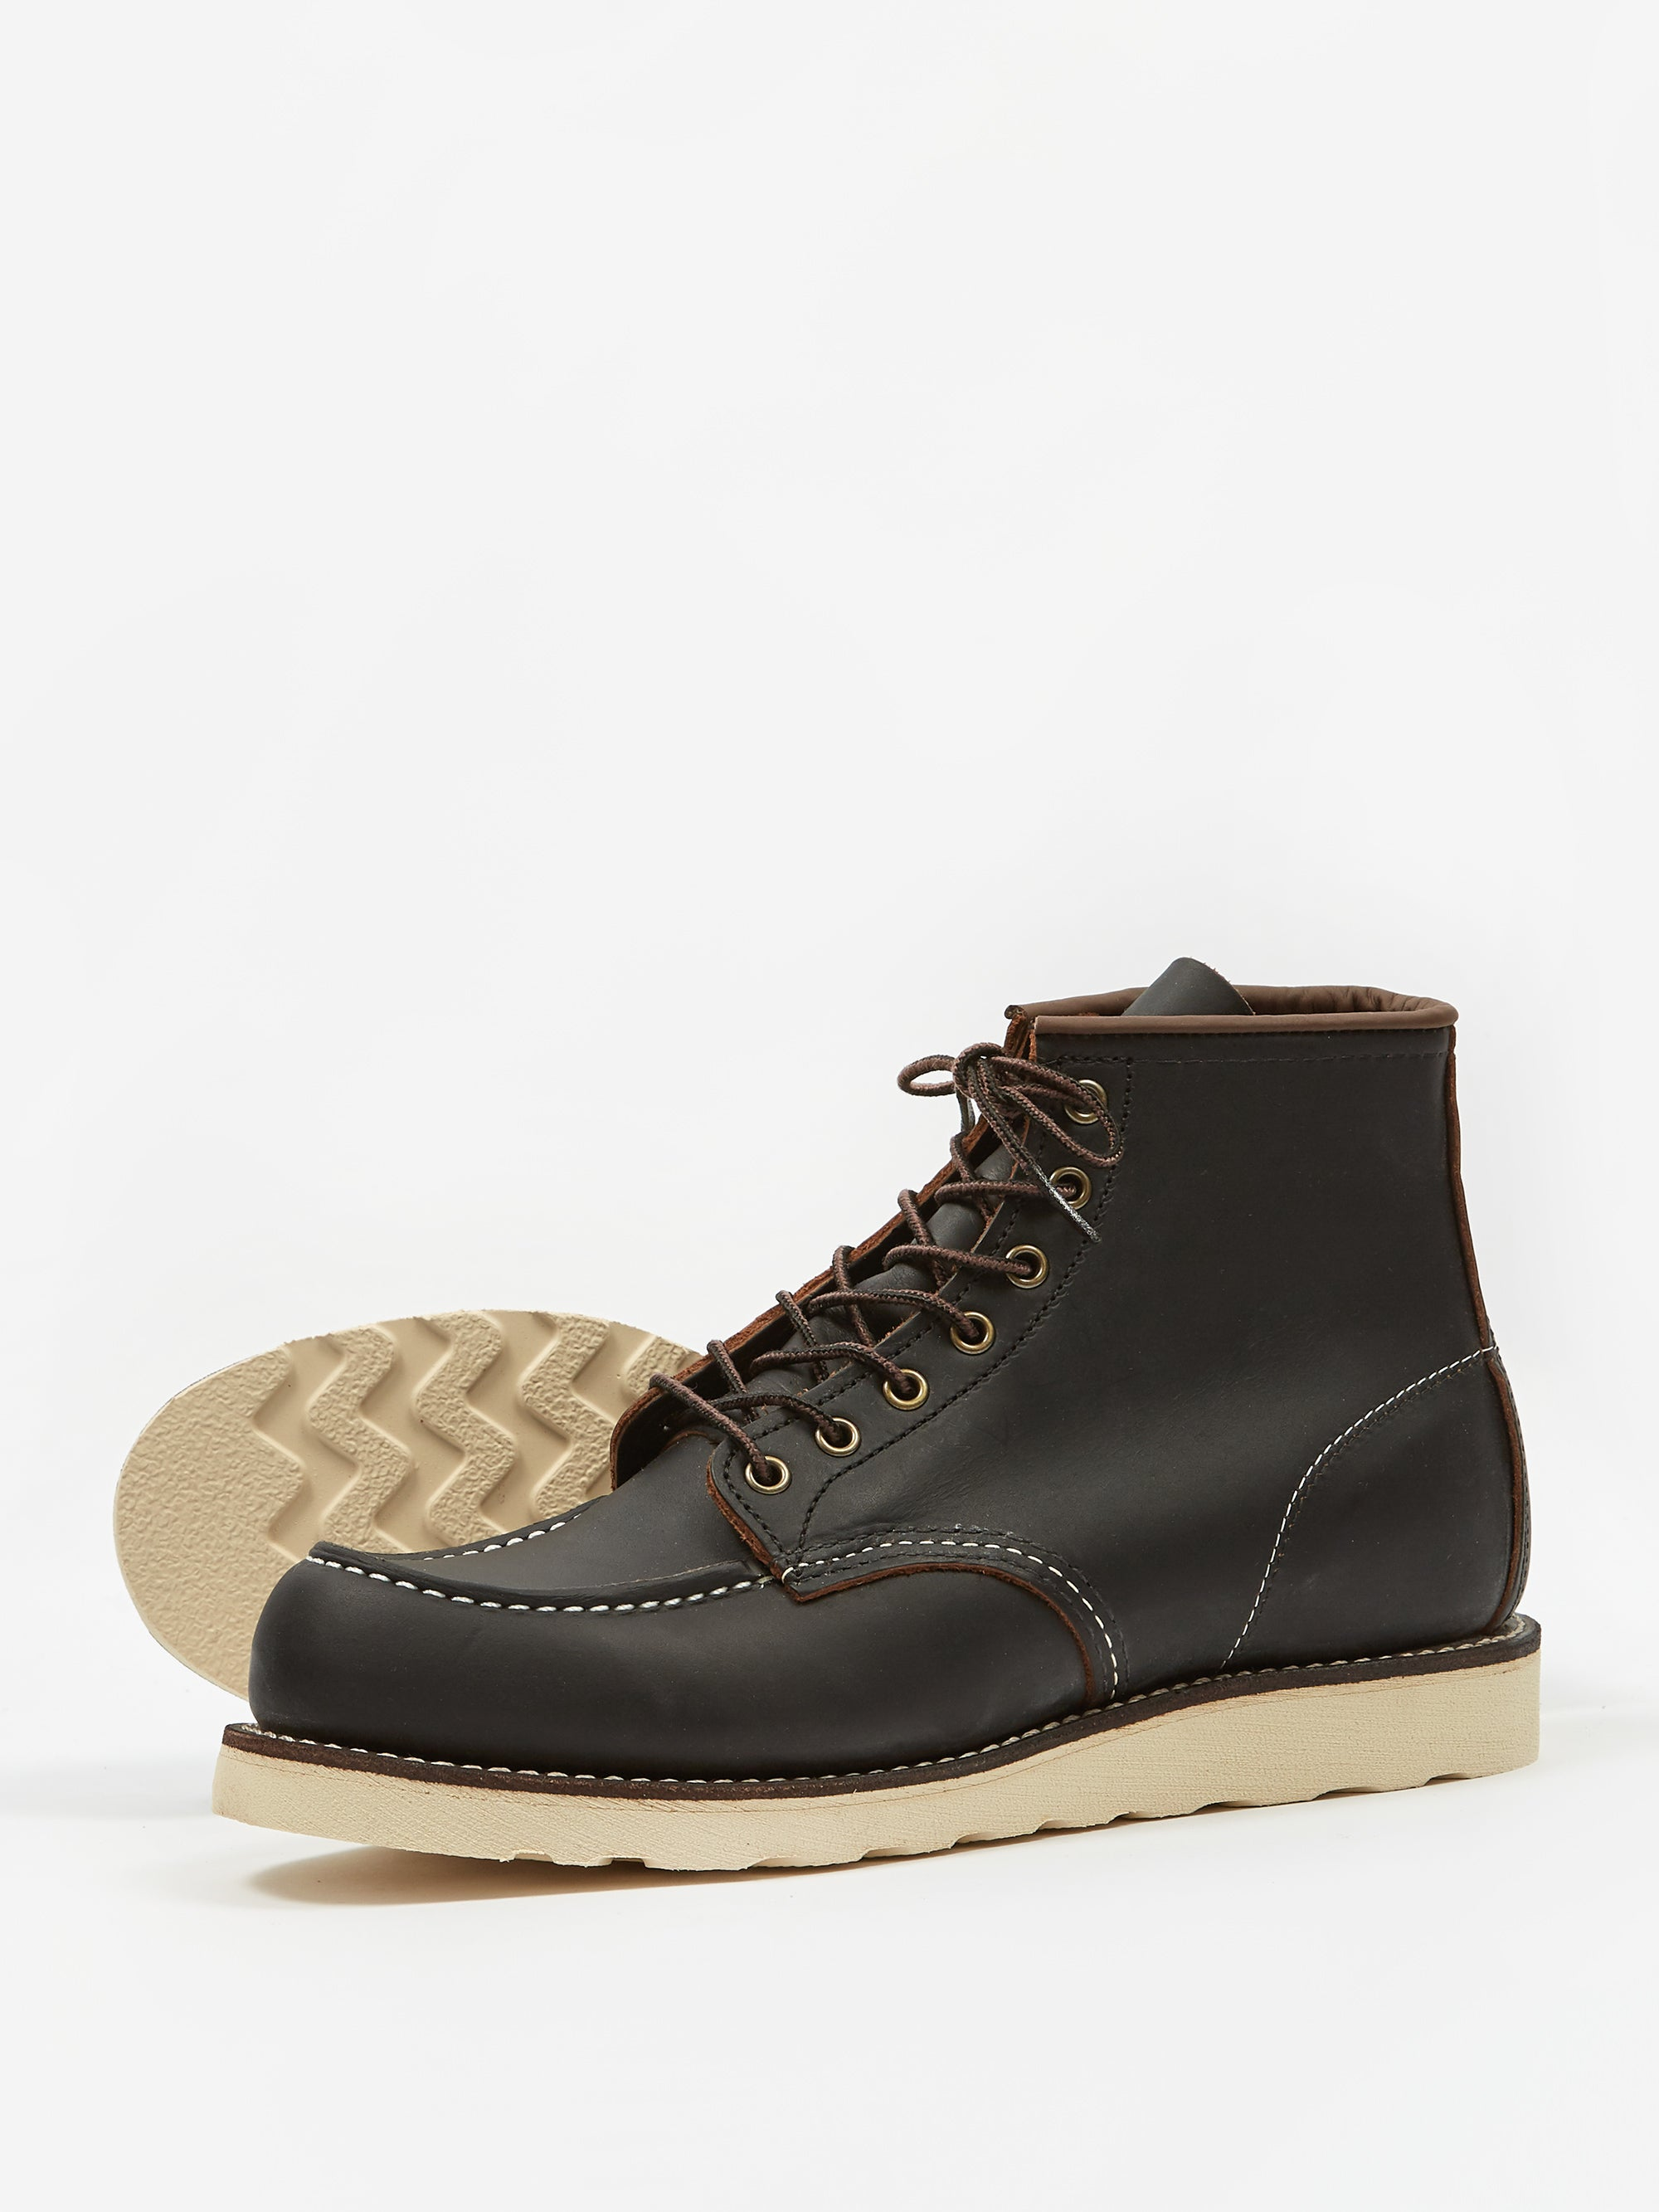 Red Wing Classic Prairie Boot 877 | Red